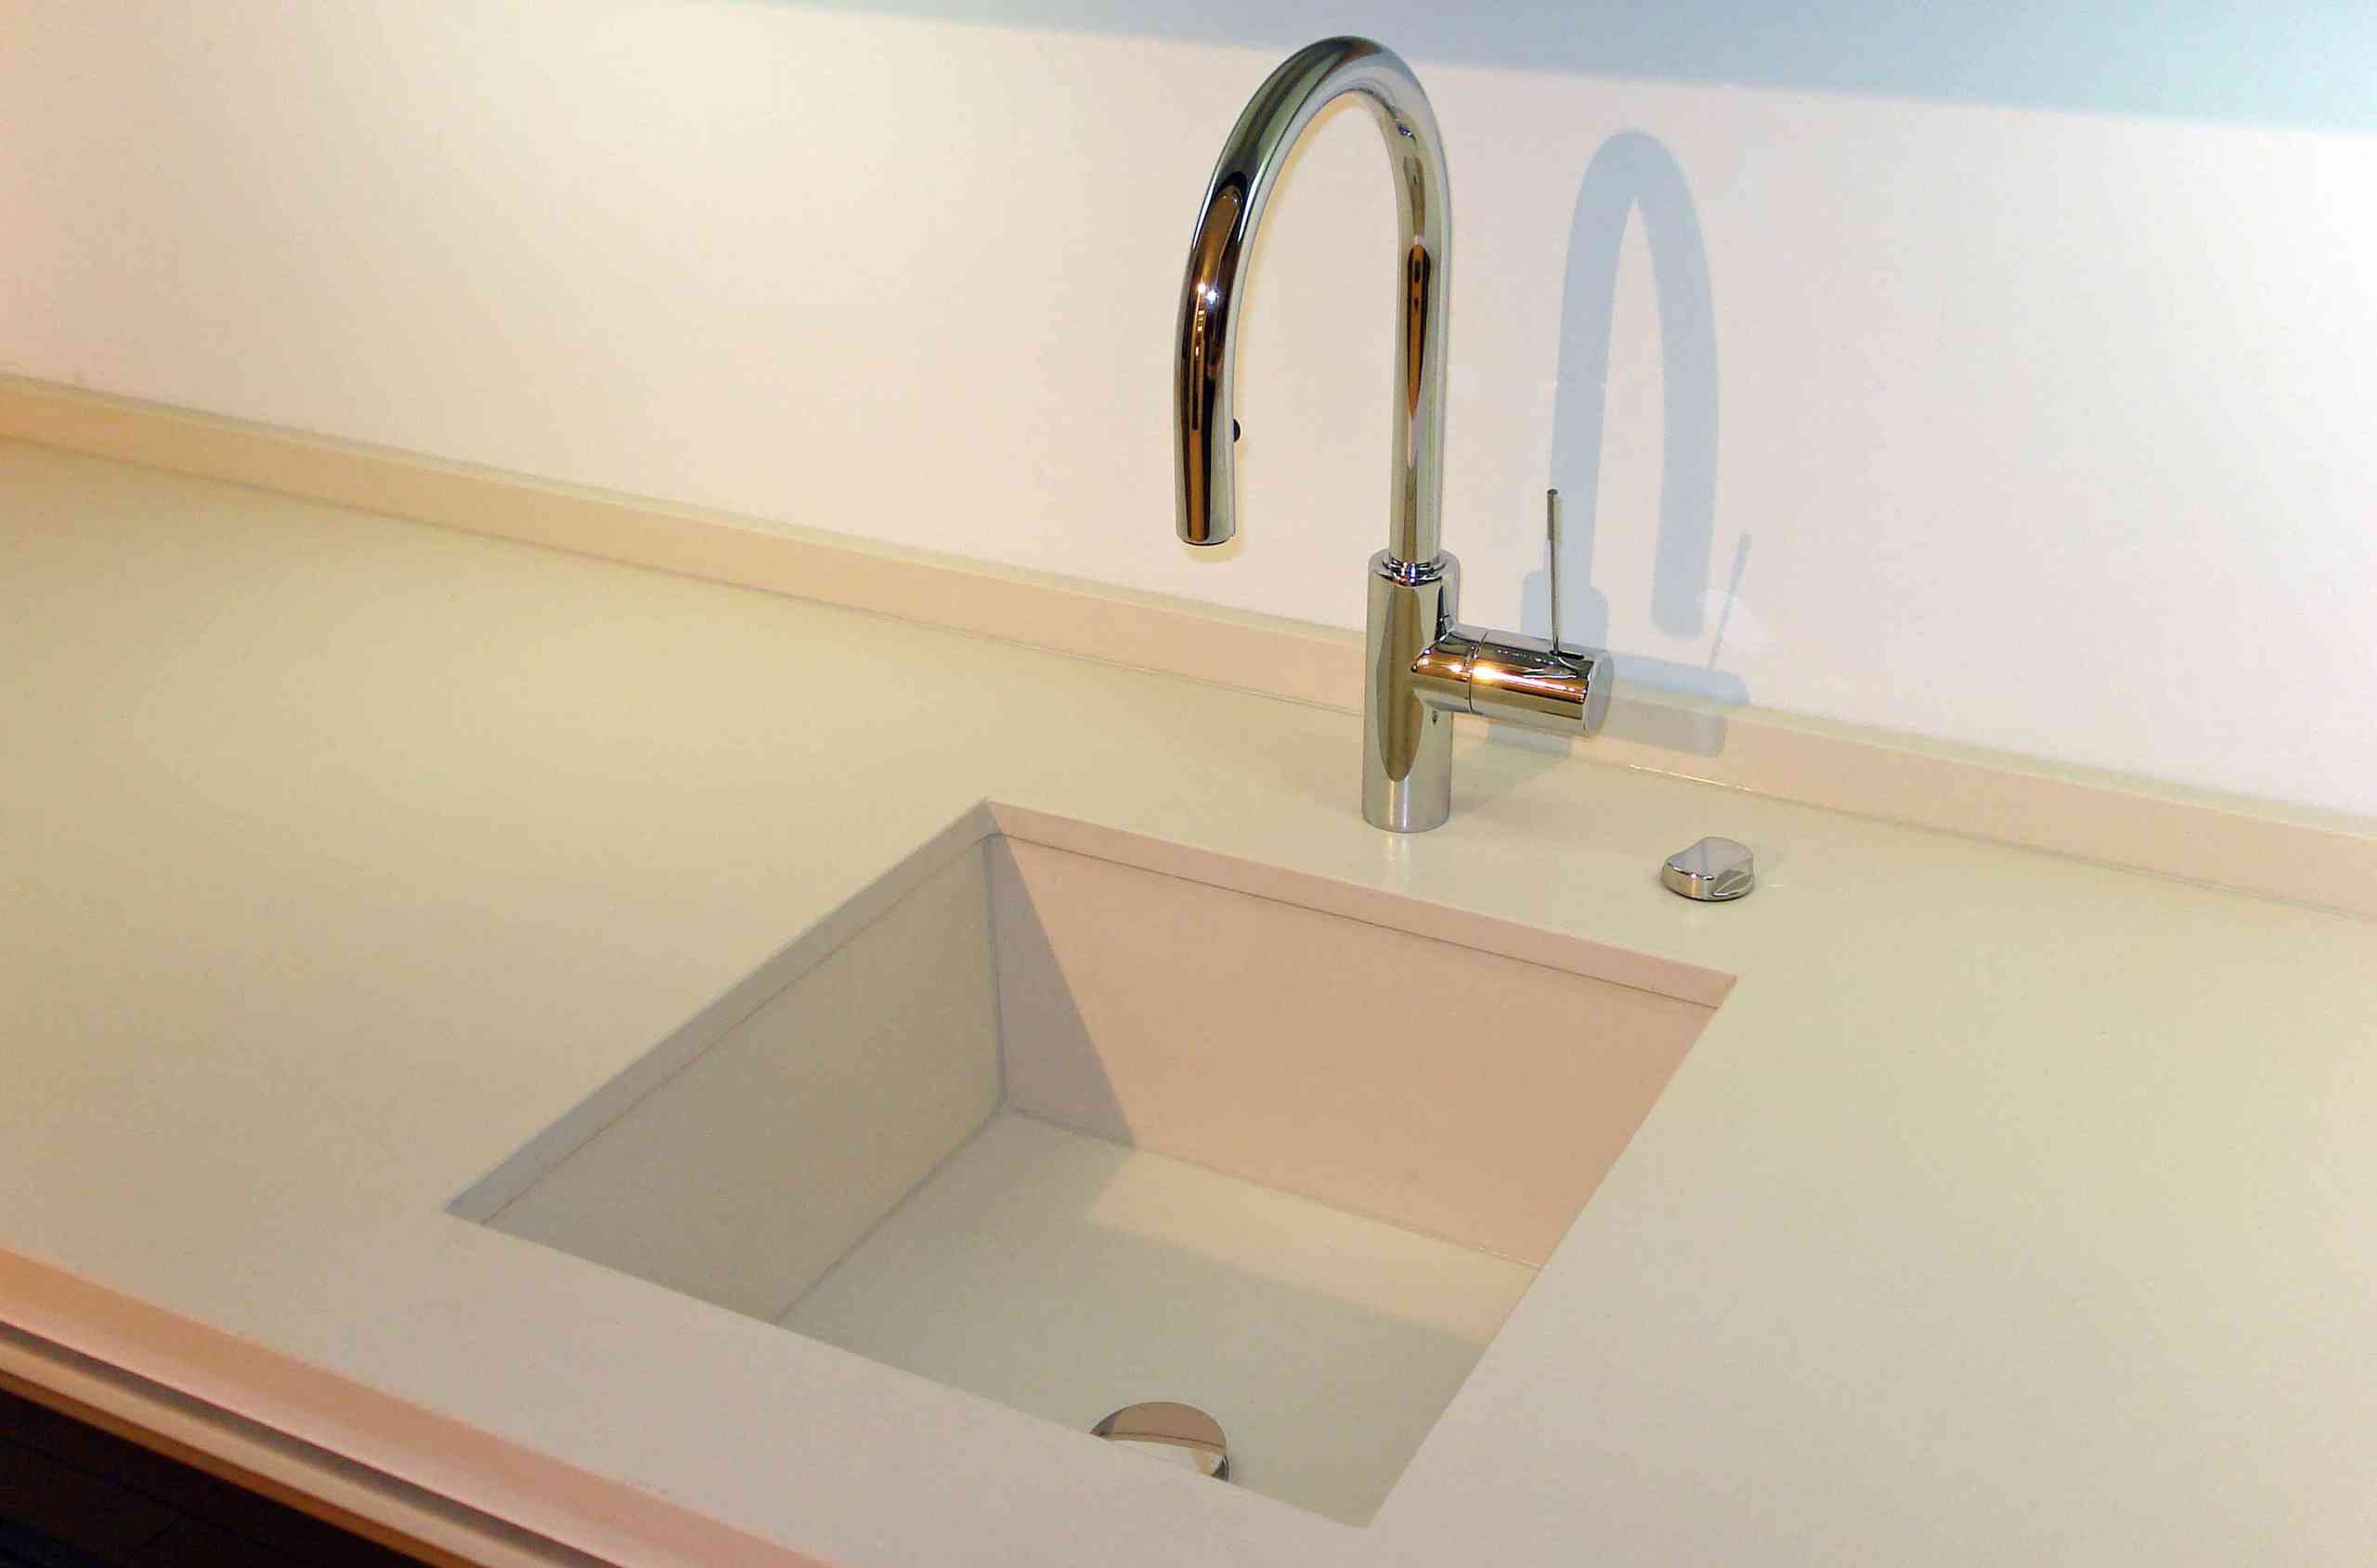 Spülbecken in Silestone-Quarz-Komposit